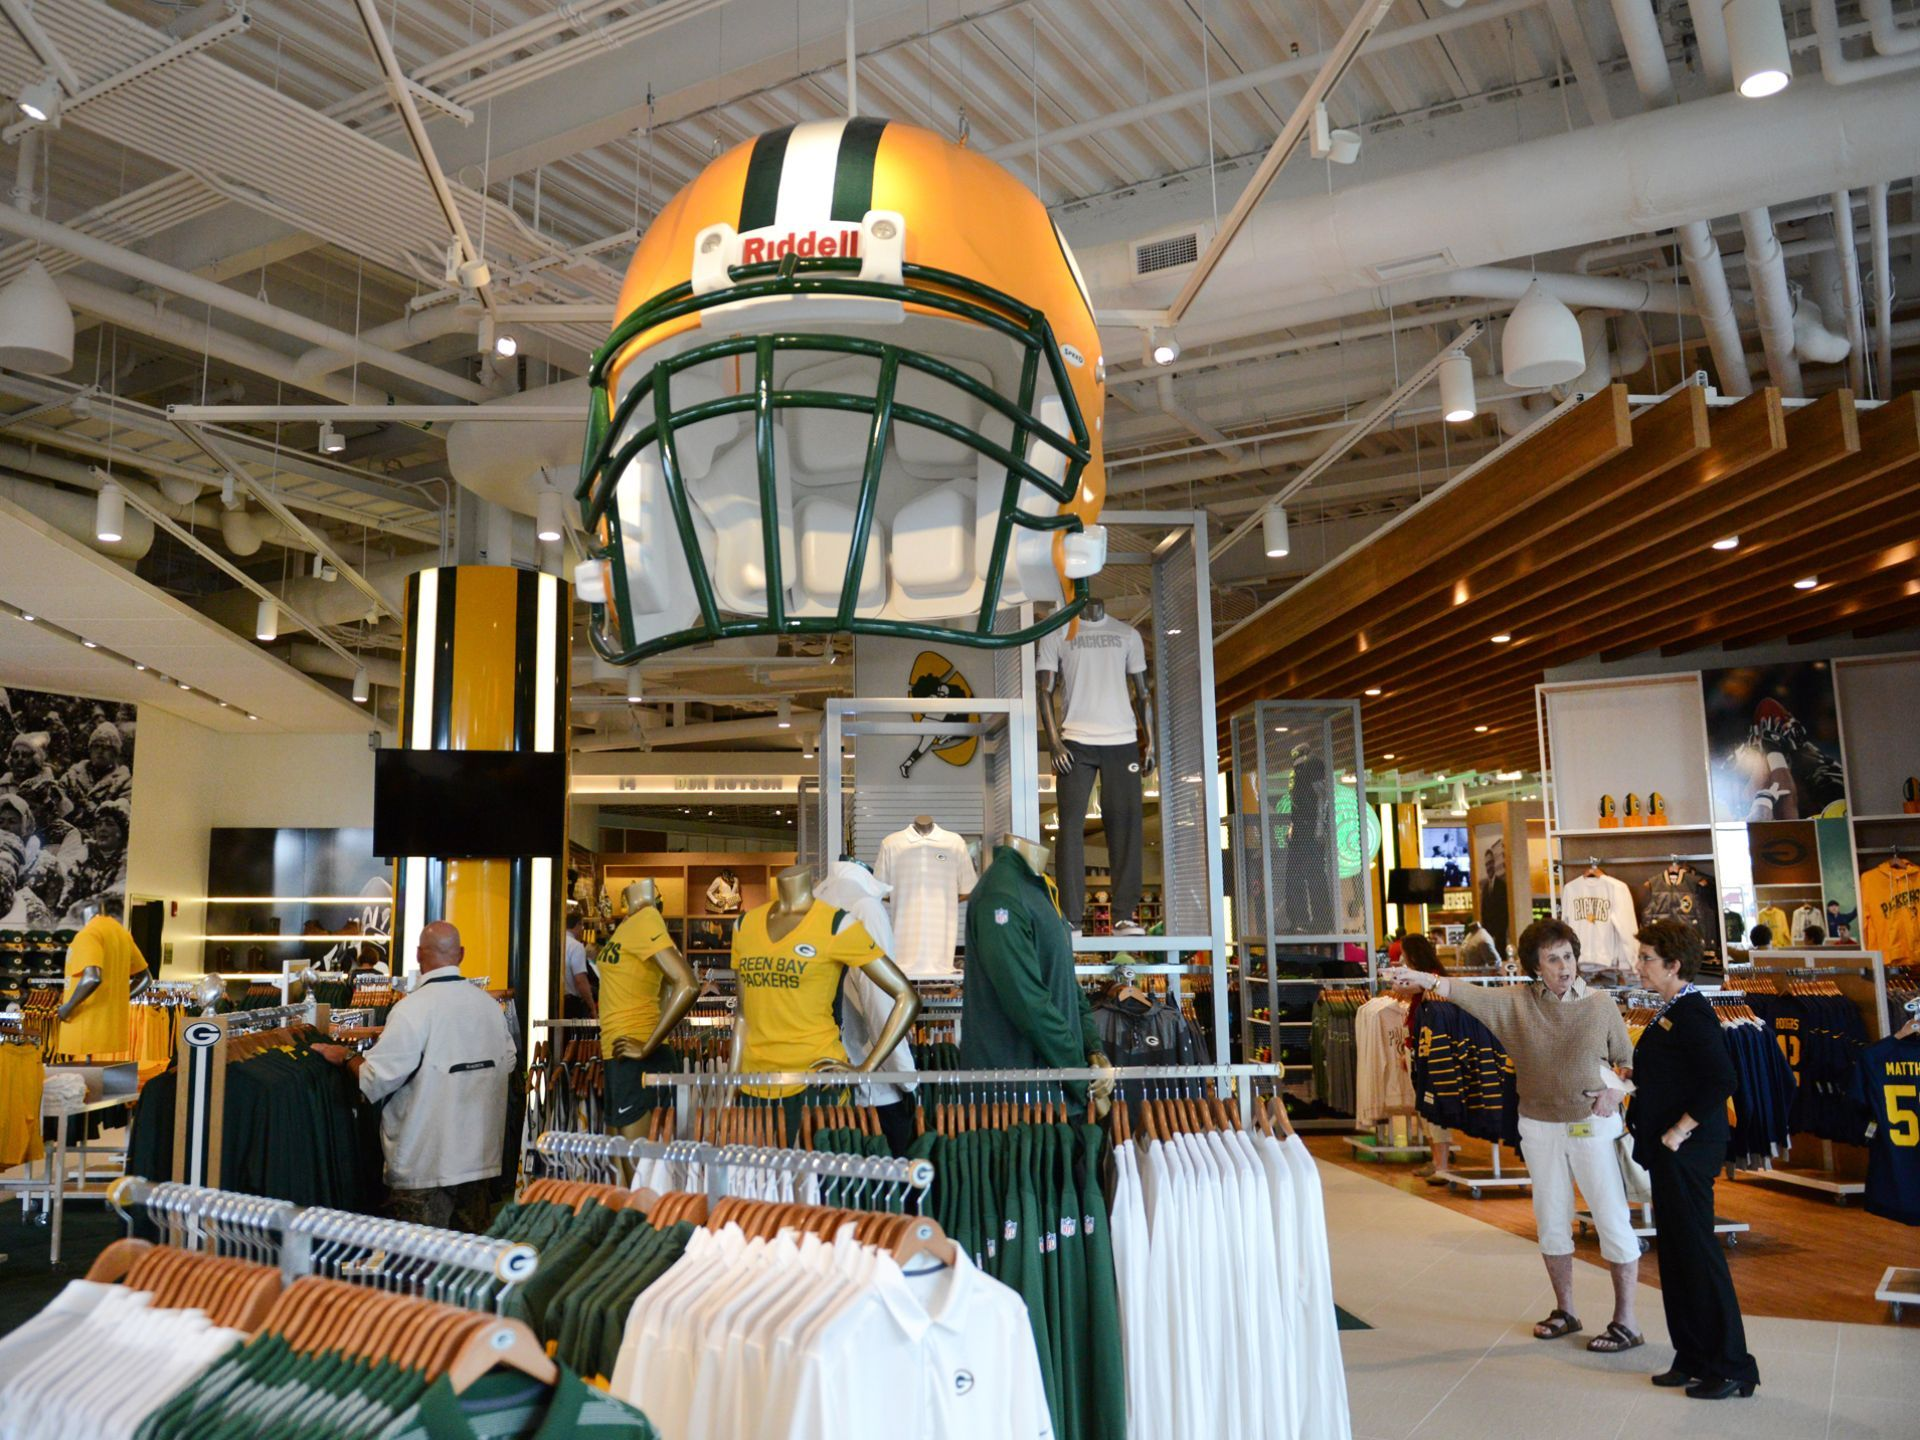 The New Expanded Packers Pro Shop At Lambeau Field Holds An Employee Shopping Event Wednesday July 16 2014 Packers Pro Shop Lambeau Field Packers